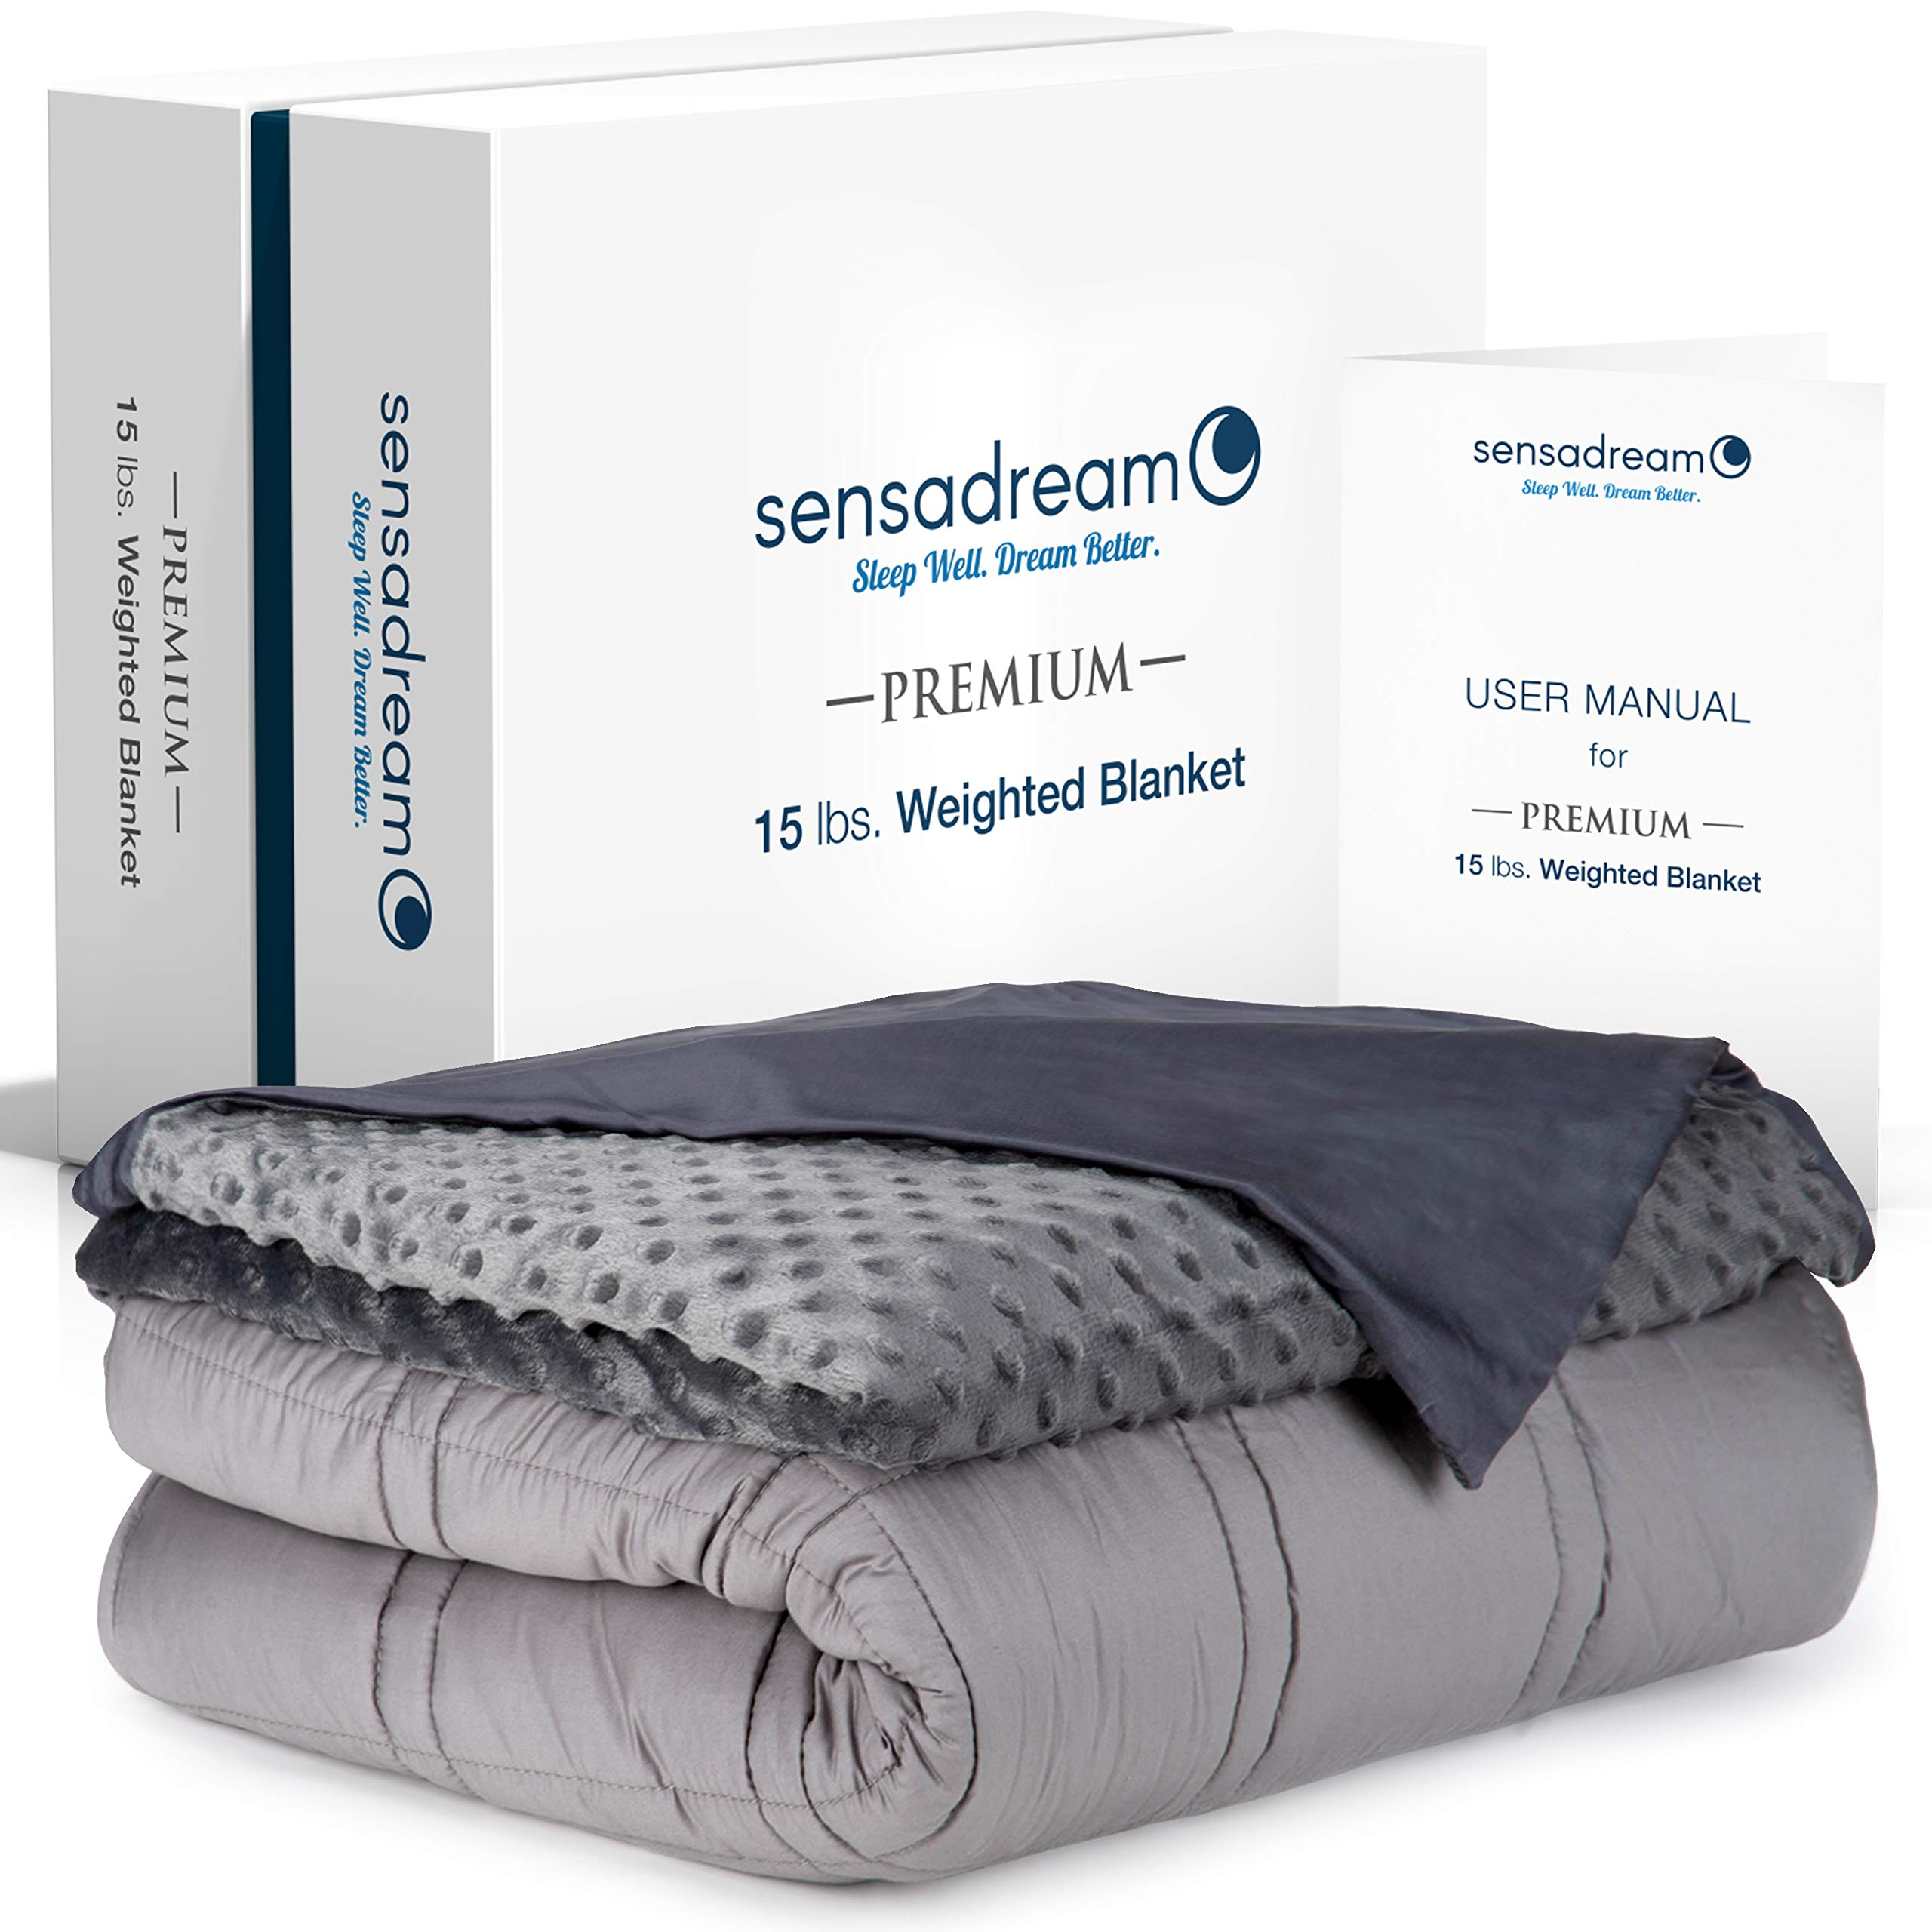 Sensadream Cooling Weighted Blanket for Adult and Kids - 20 lbs, 60x80, Queen Size - Cool Bamboo and Minky Dual-Sided Cover Included - Best Heavy Comforter for Improved Sleep